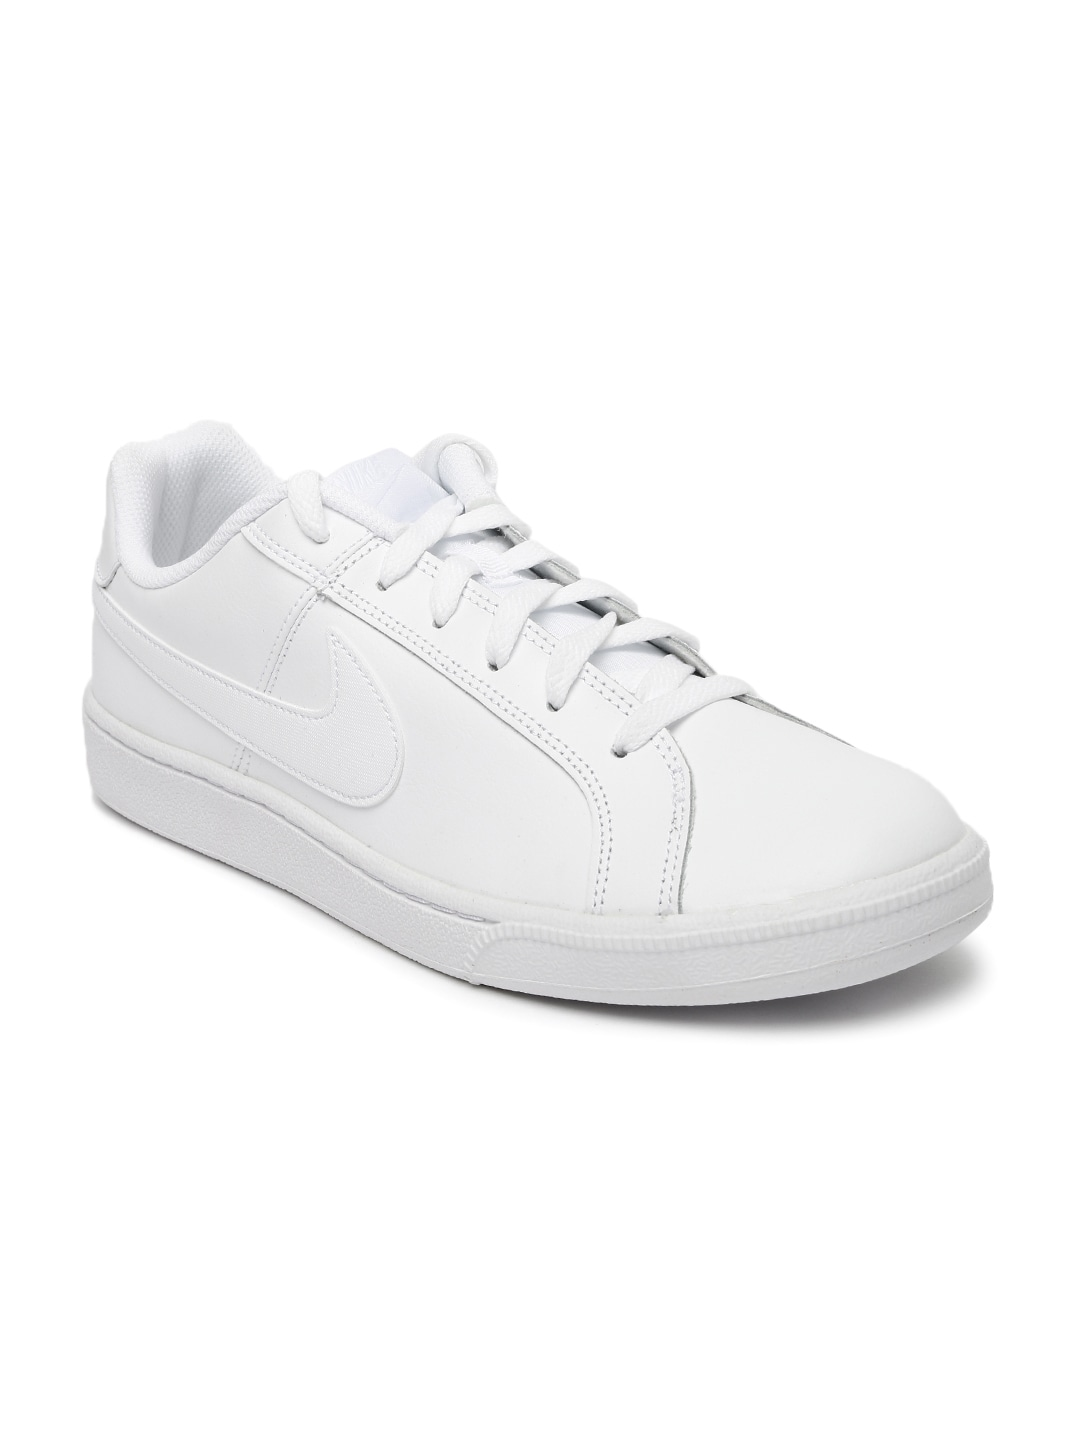 Nike White Men Sneakers In Online Buy India XZPkiuTO